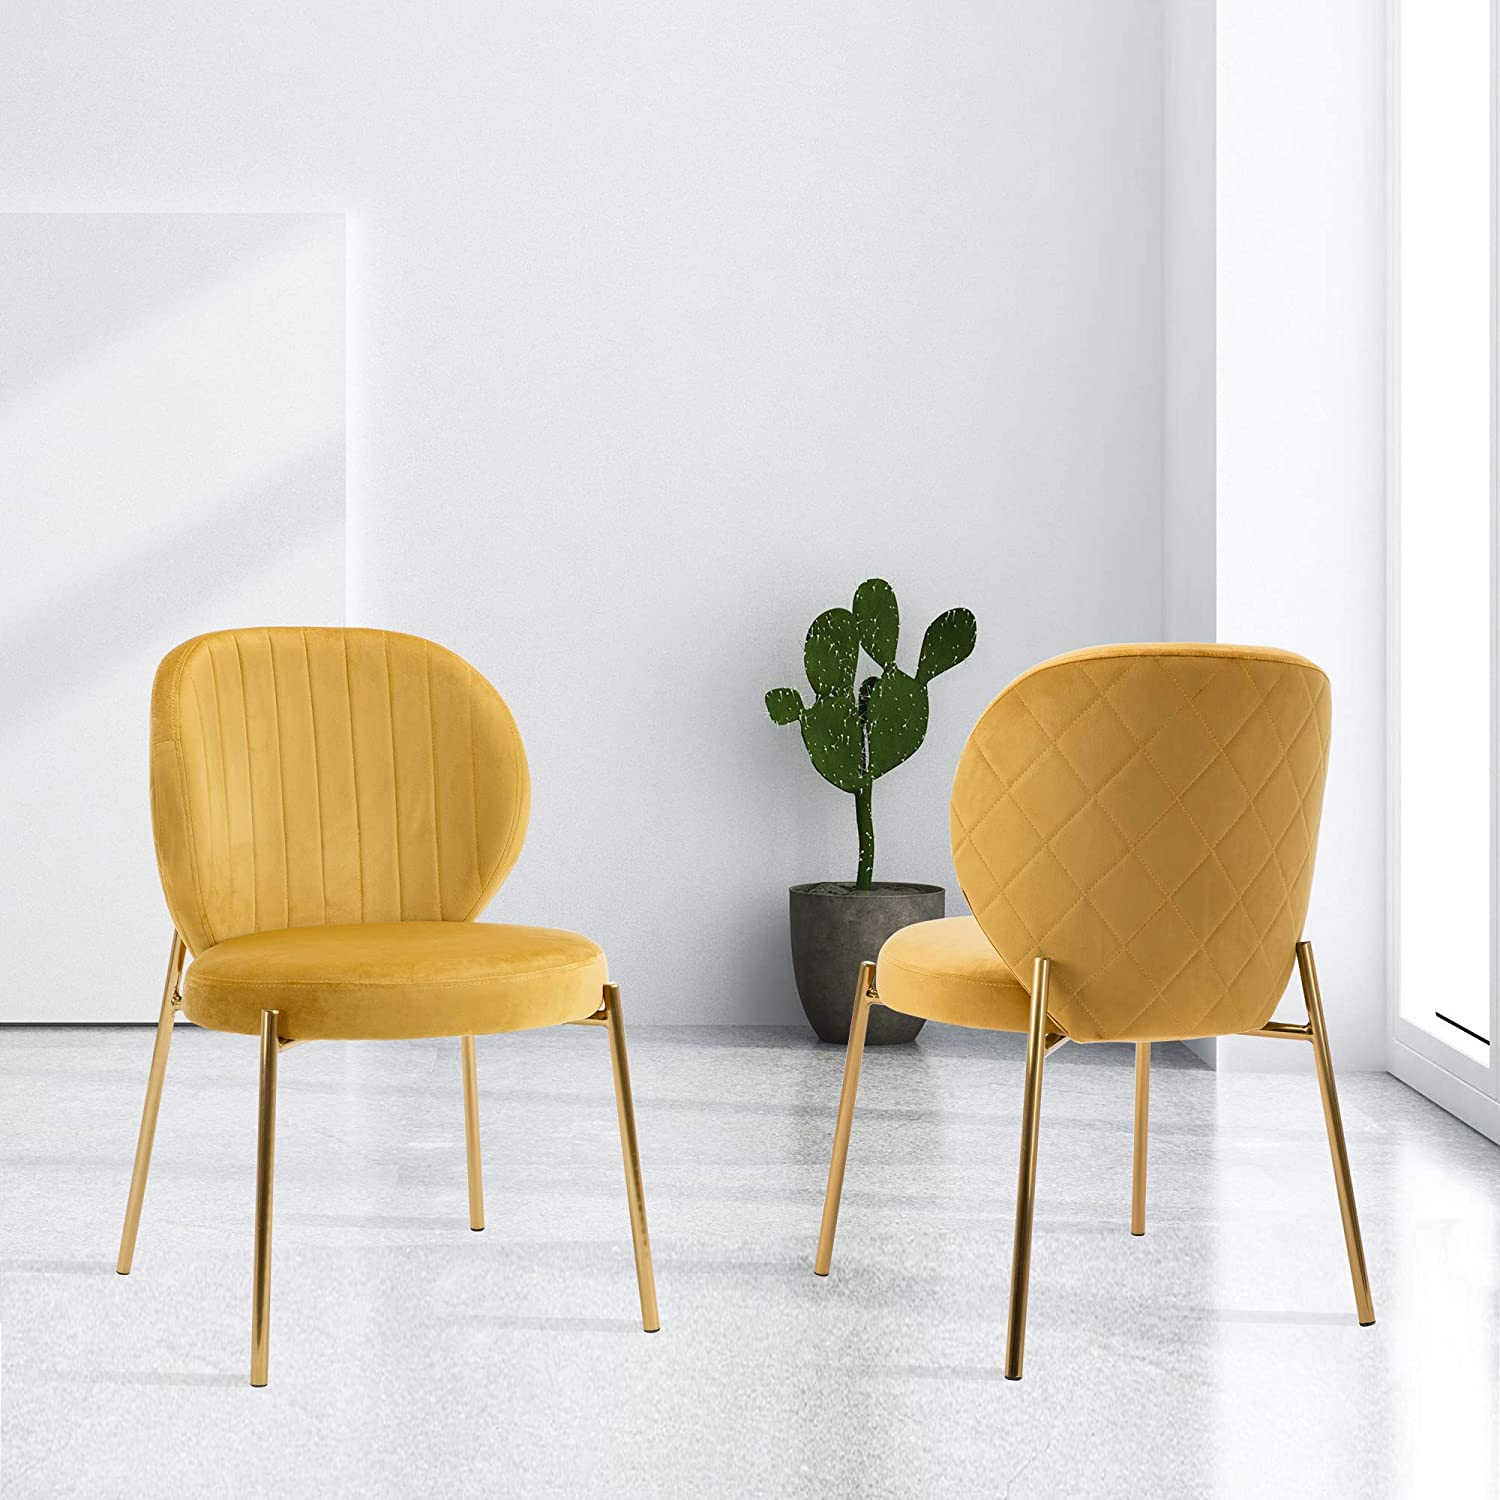 DAGONHIL Velvet Dining Chair,Upholstered Vanity Chairs with Golden Metal  Leg,Set of 6(Yellow)